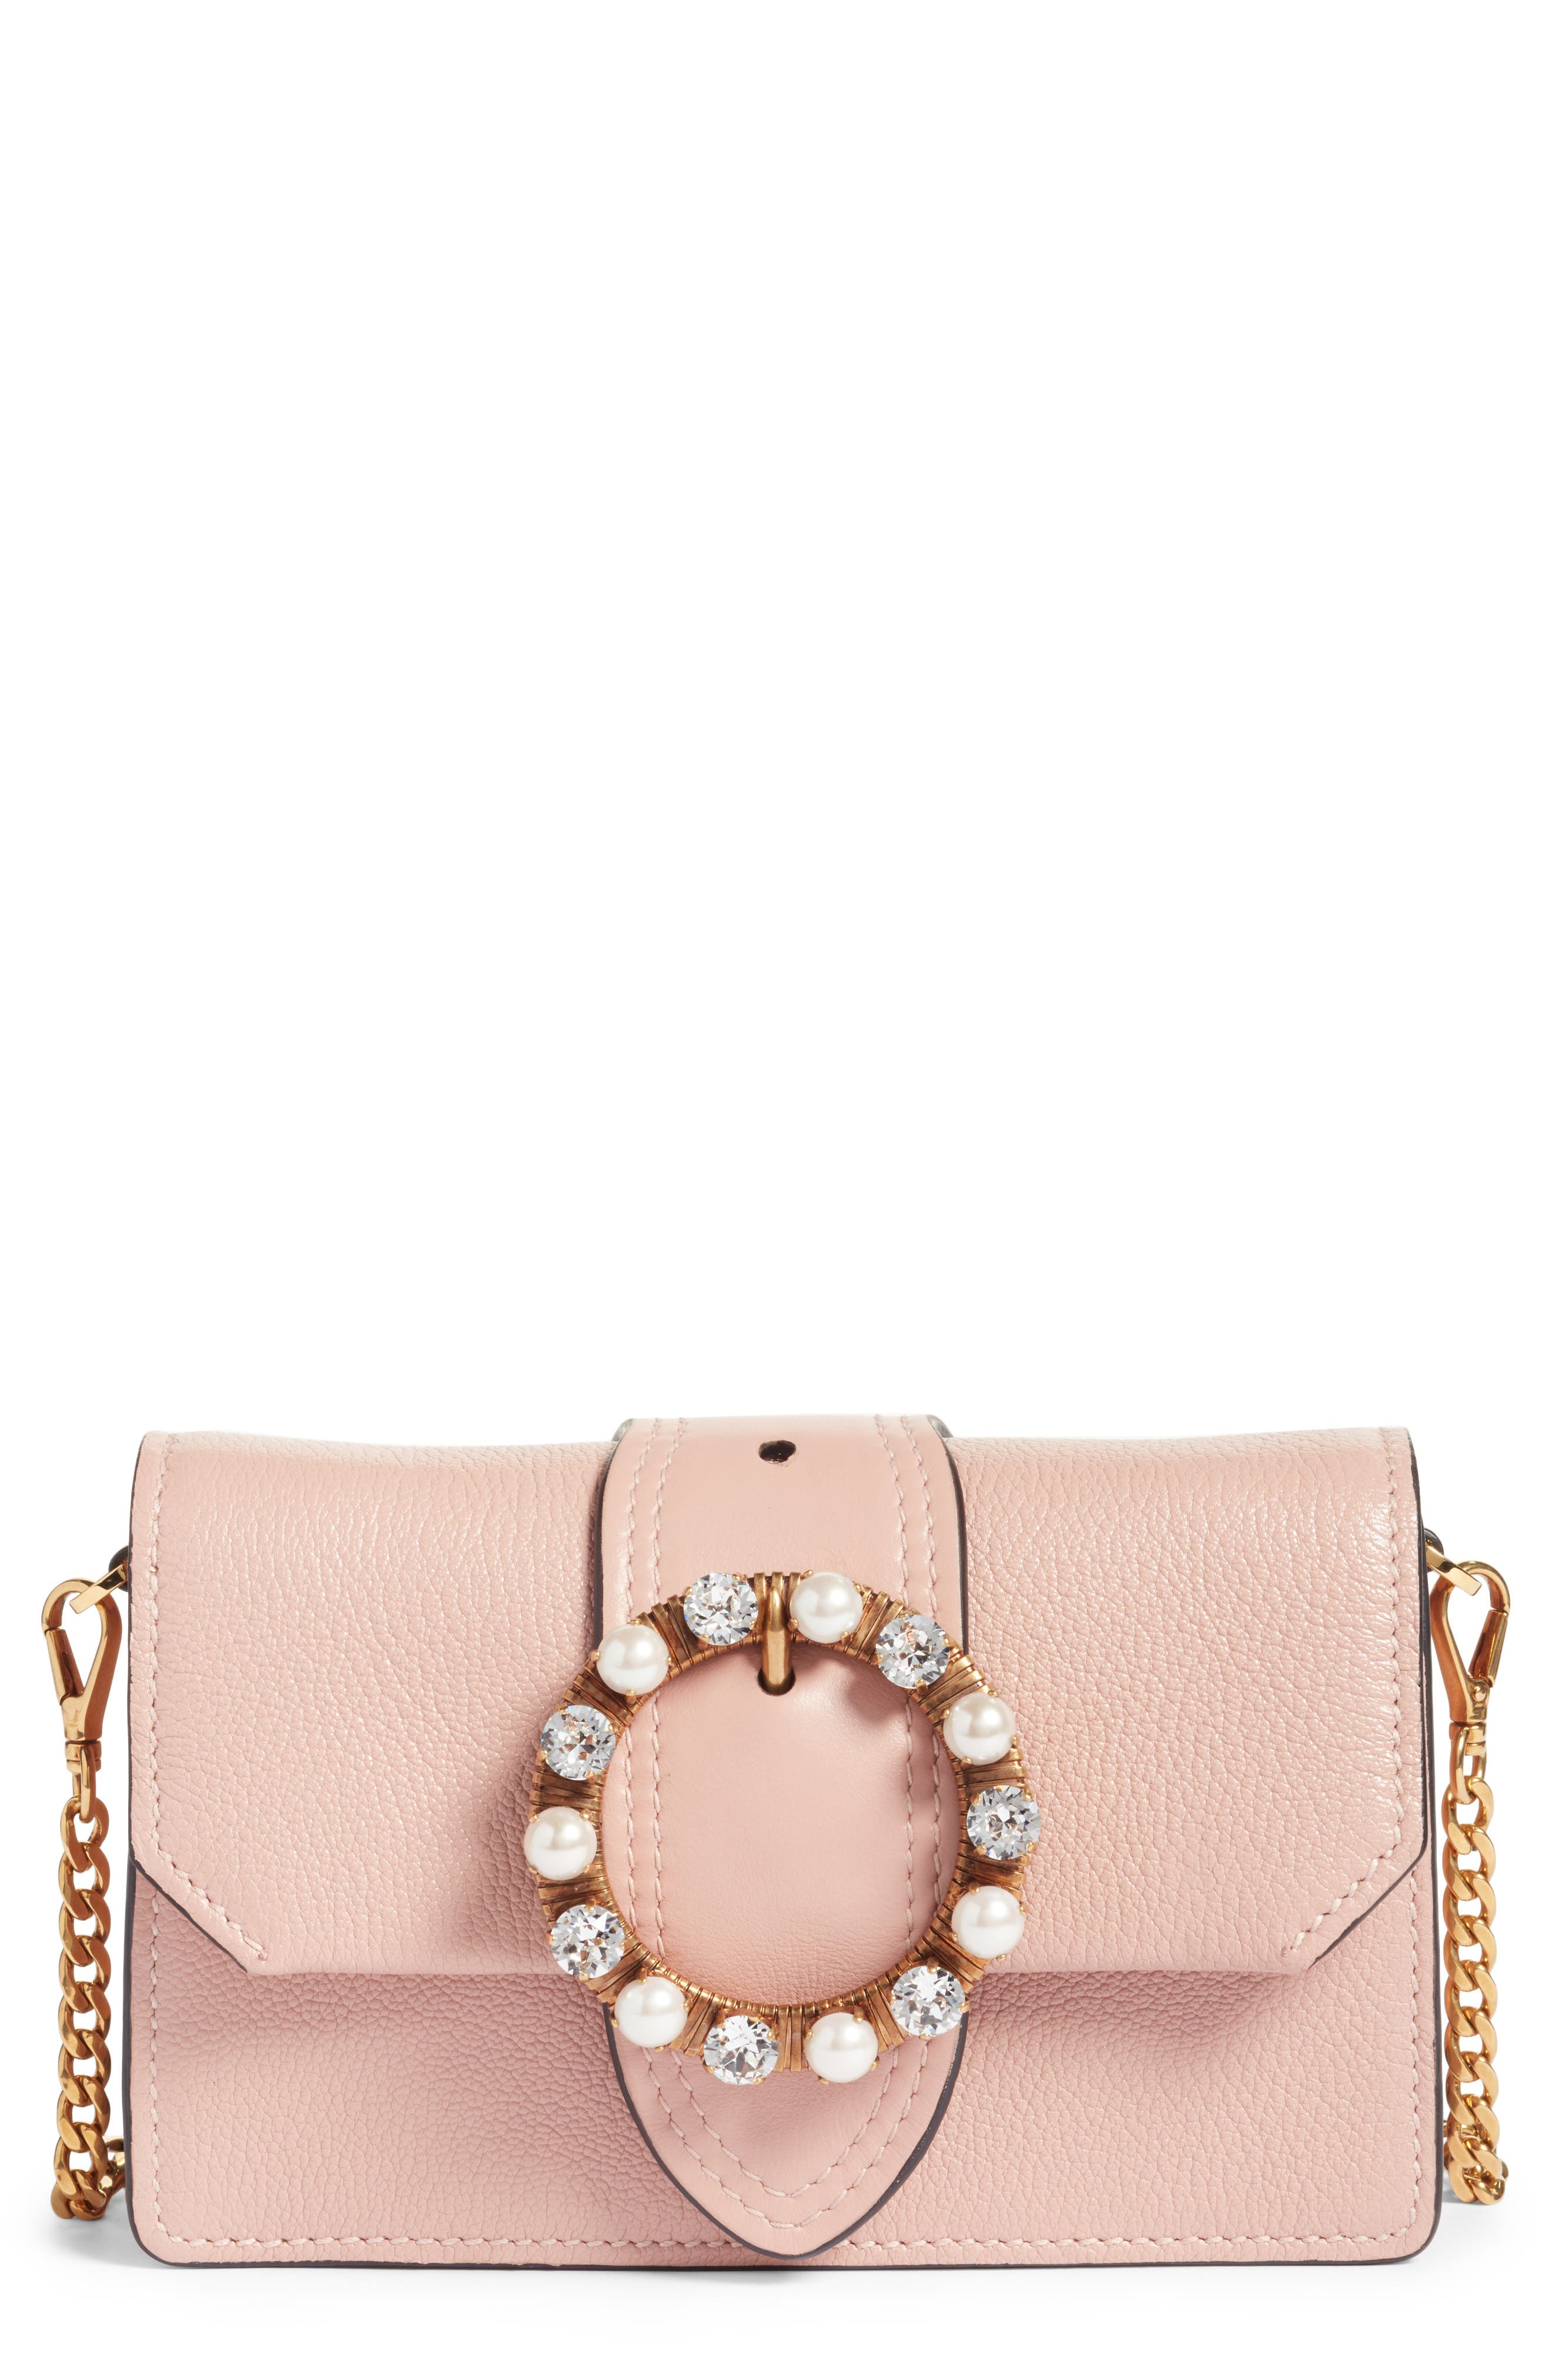 Lady Madras Crystal Embellished Leather Crossbody Bag,                         Main,                         color, Orchidea